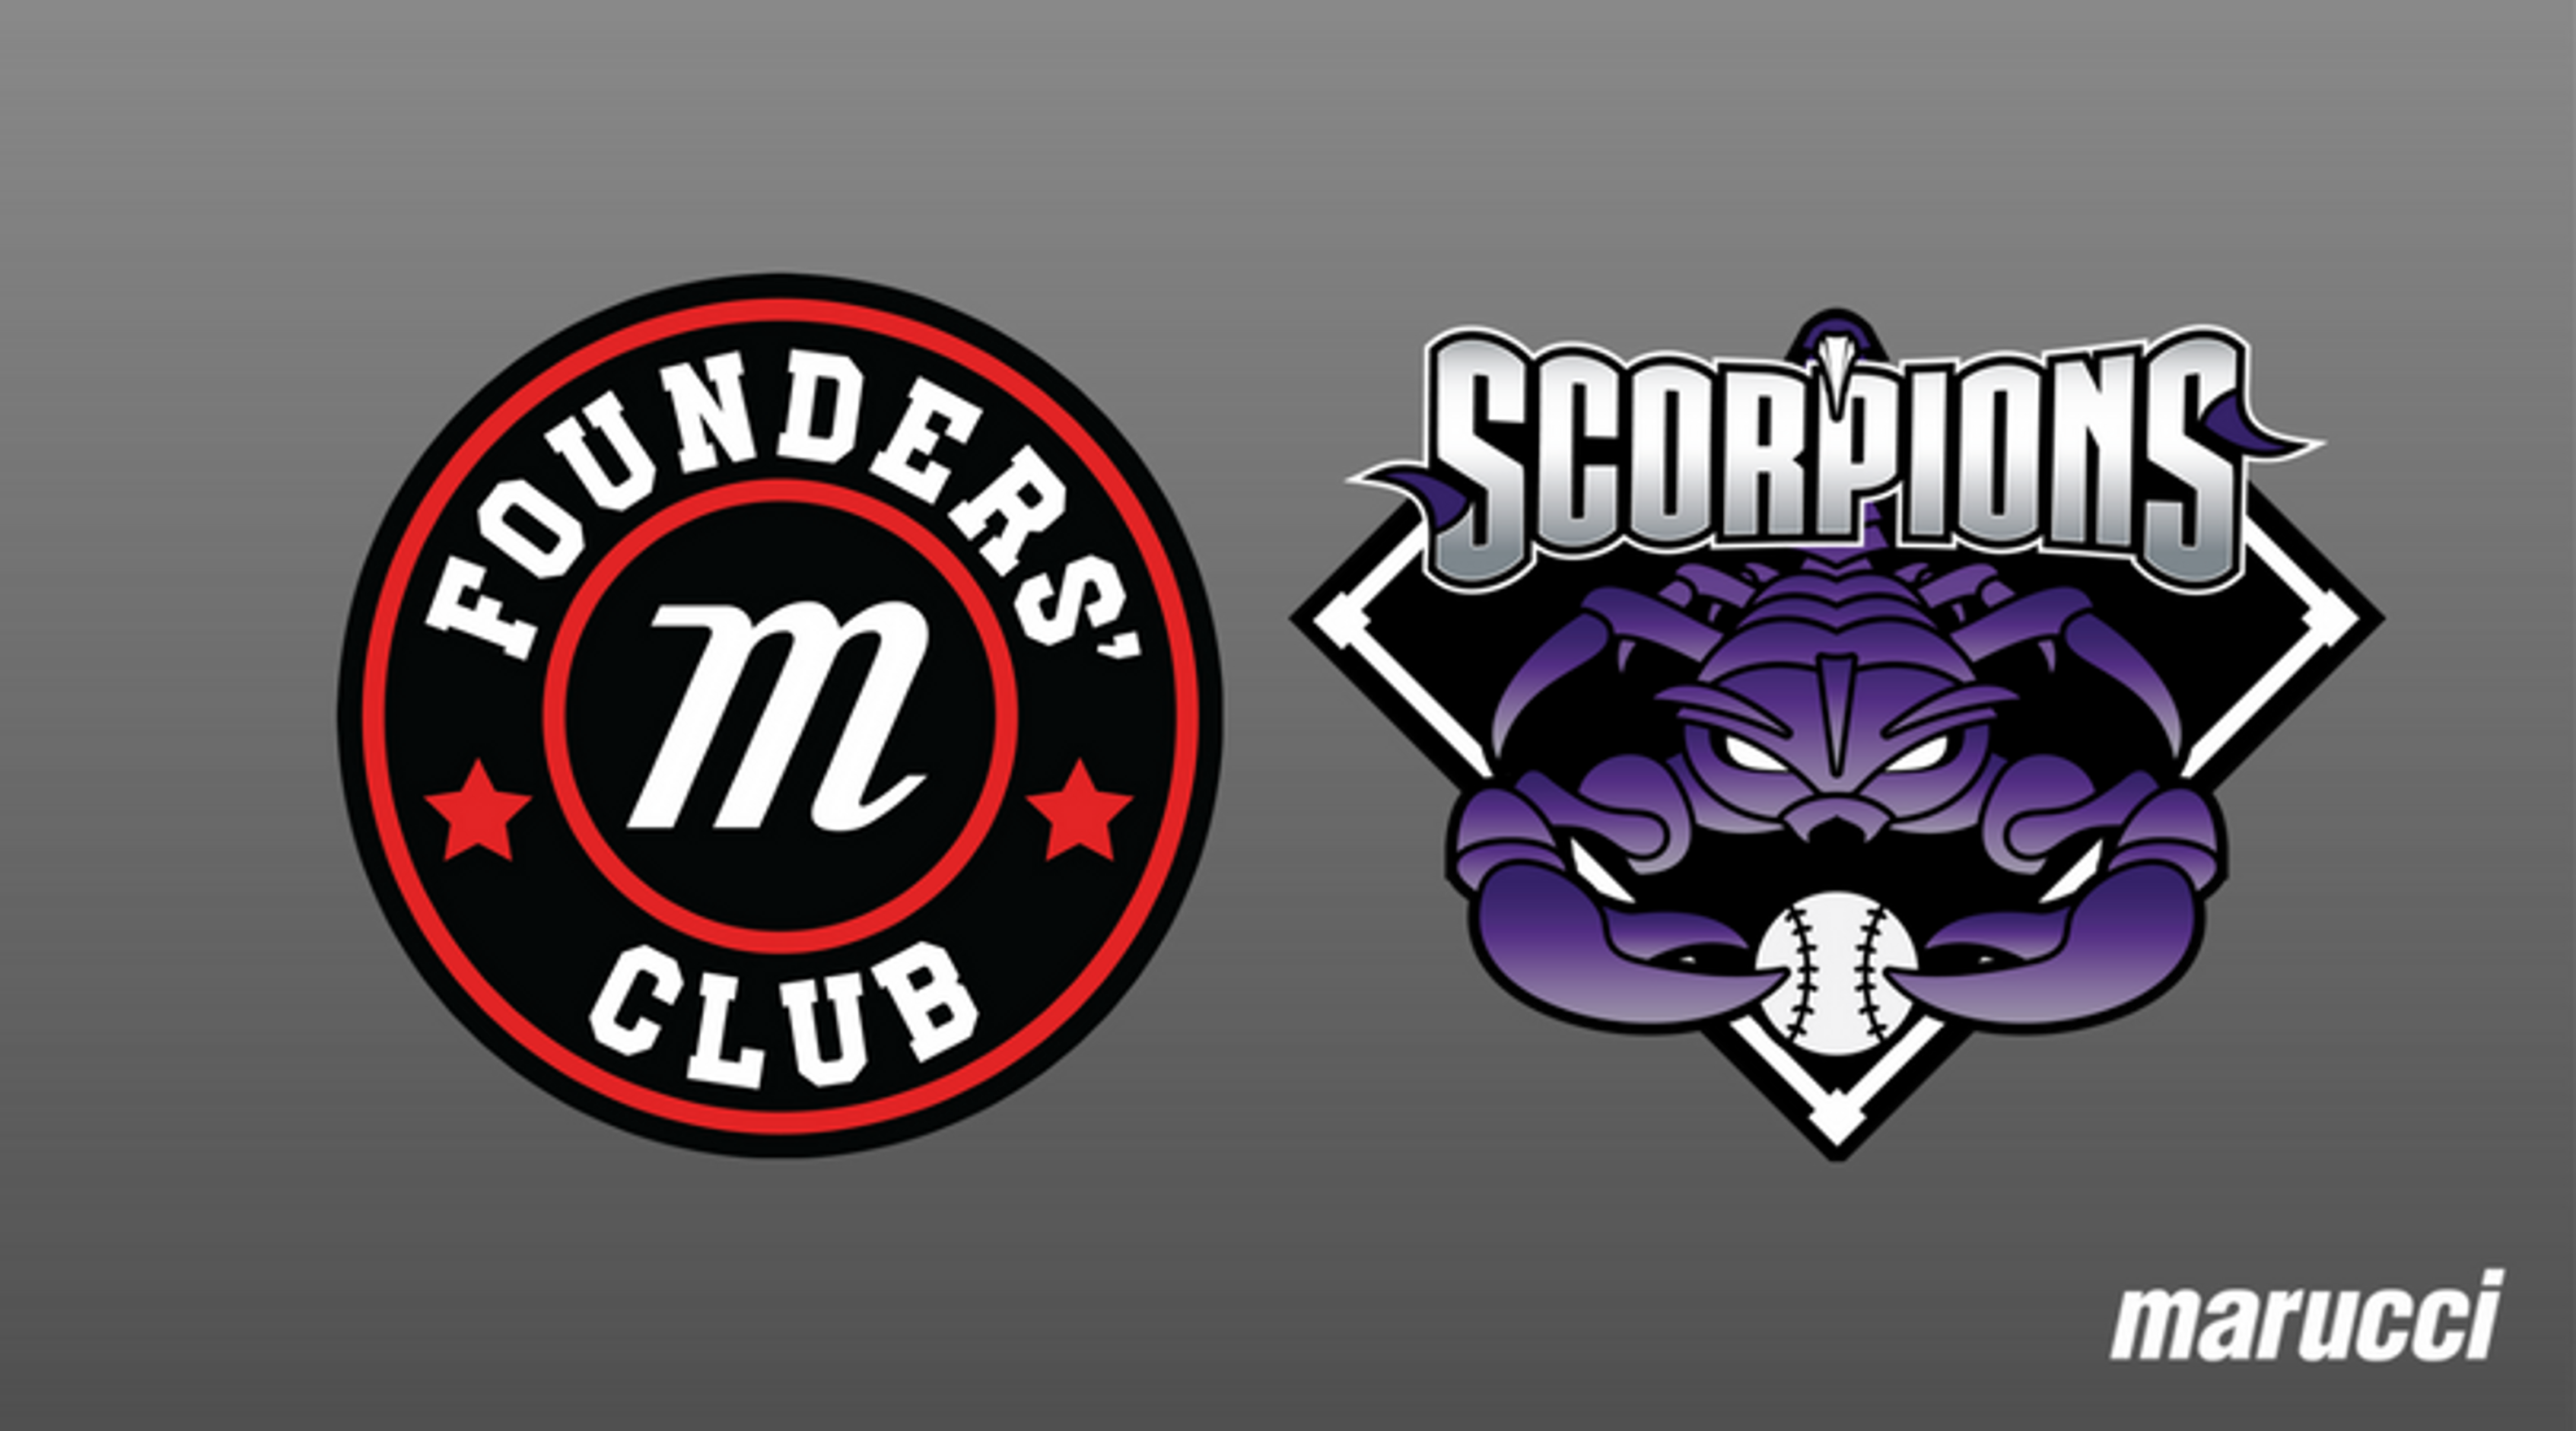 Scorpions Baseball Joins the Marucci Founders' Club